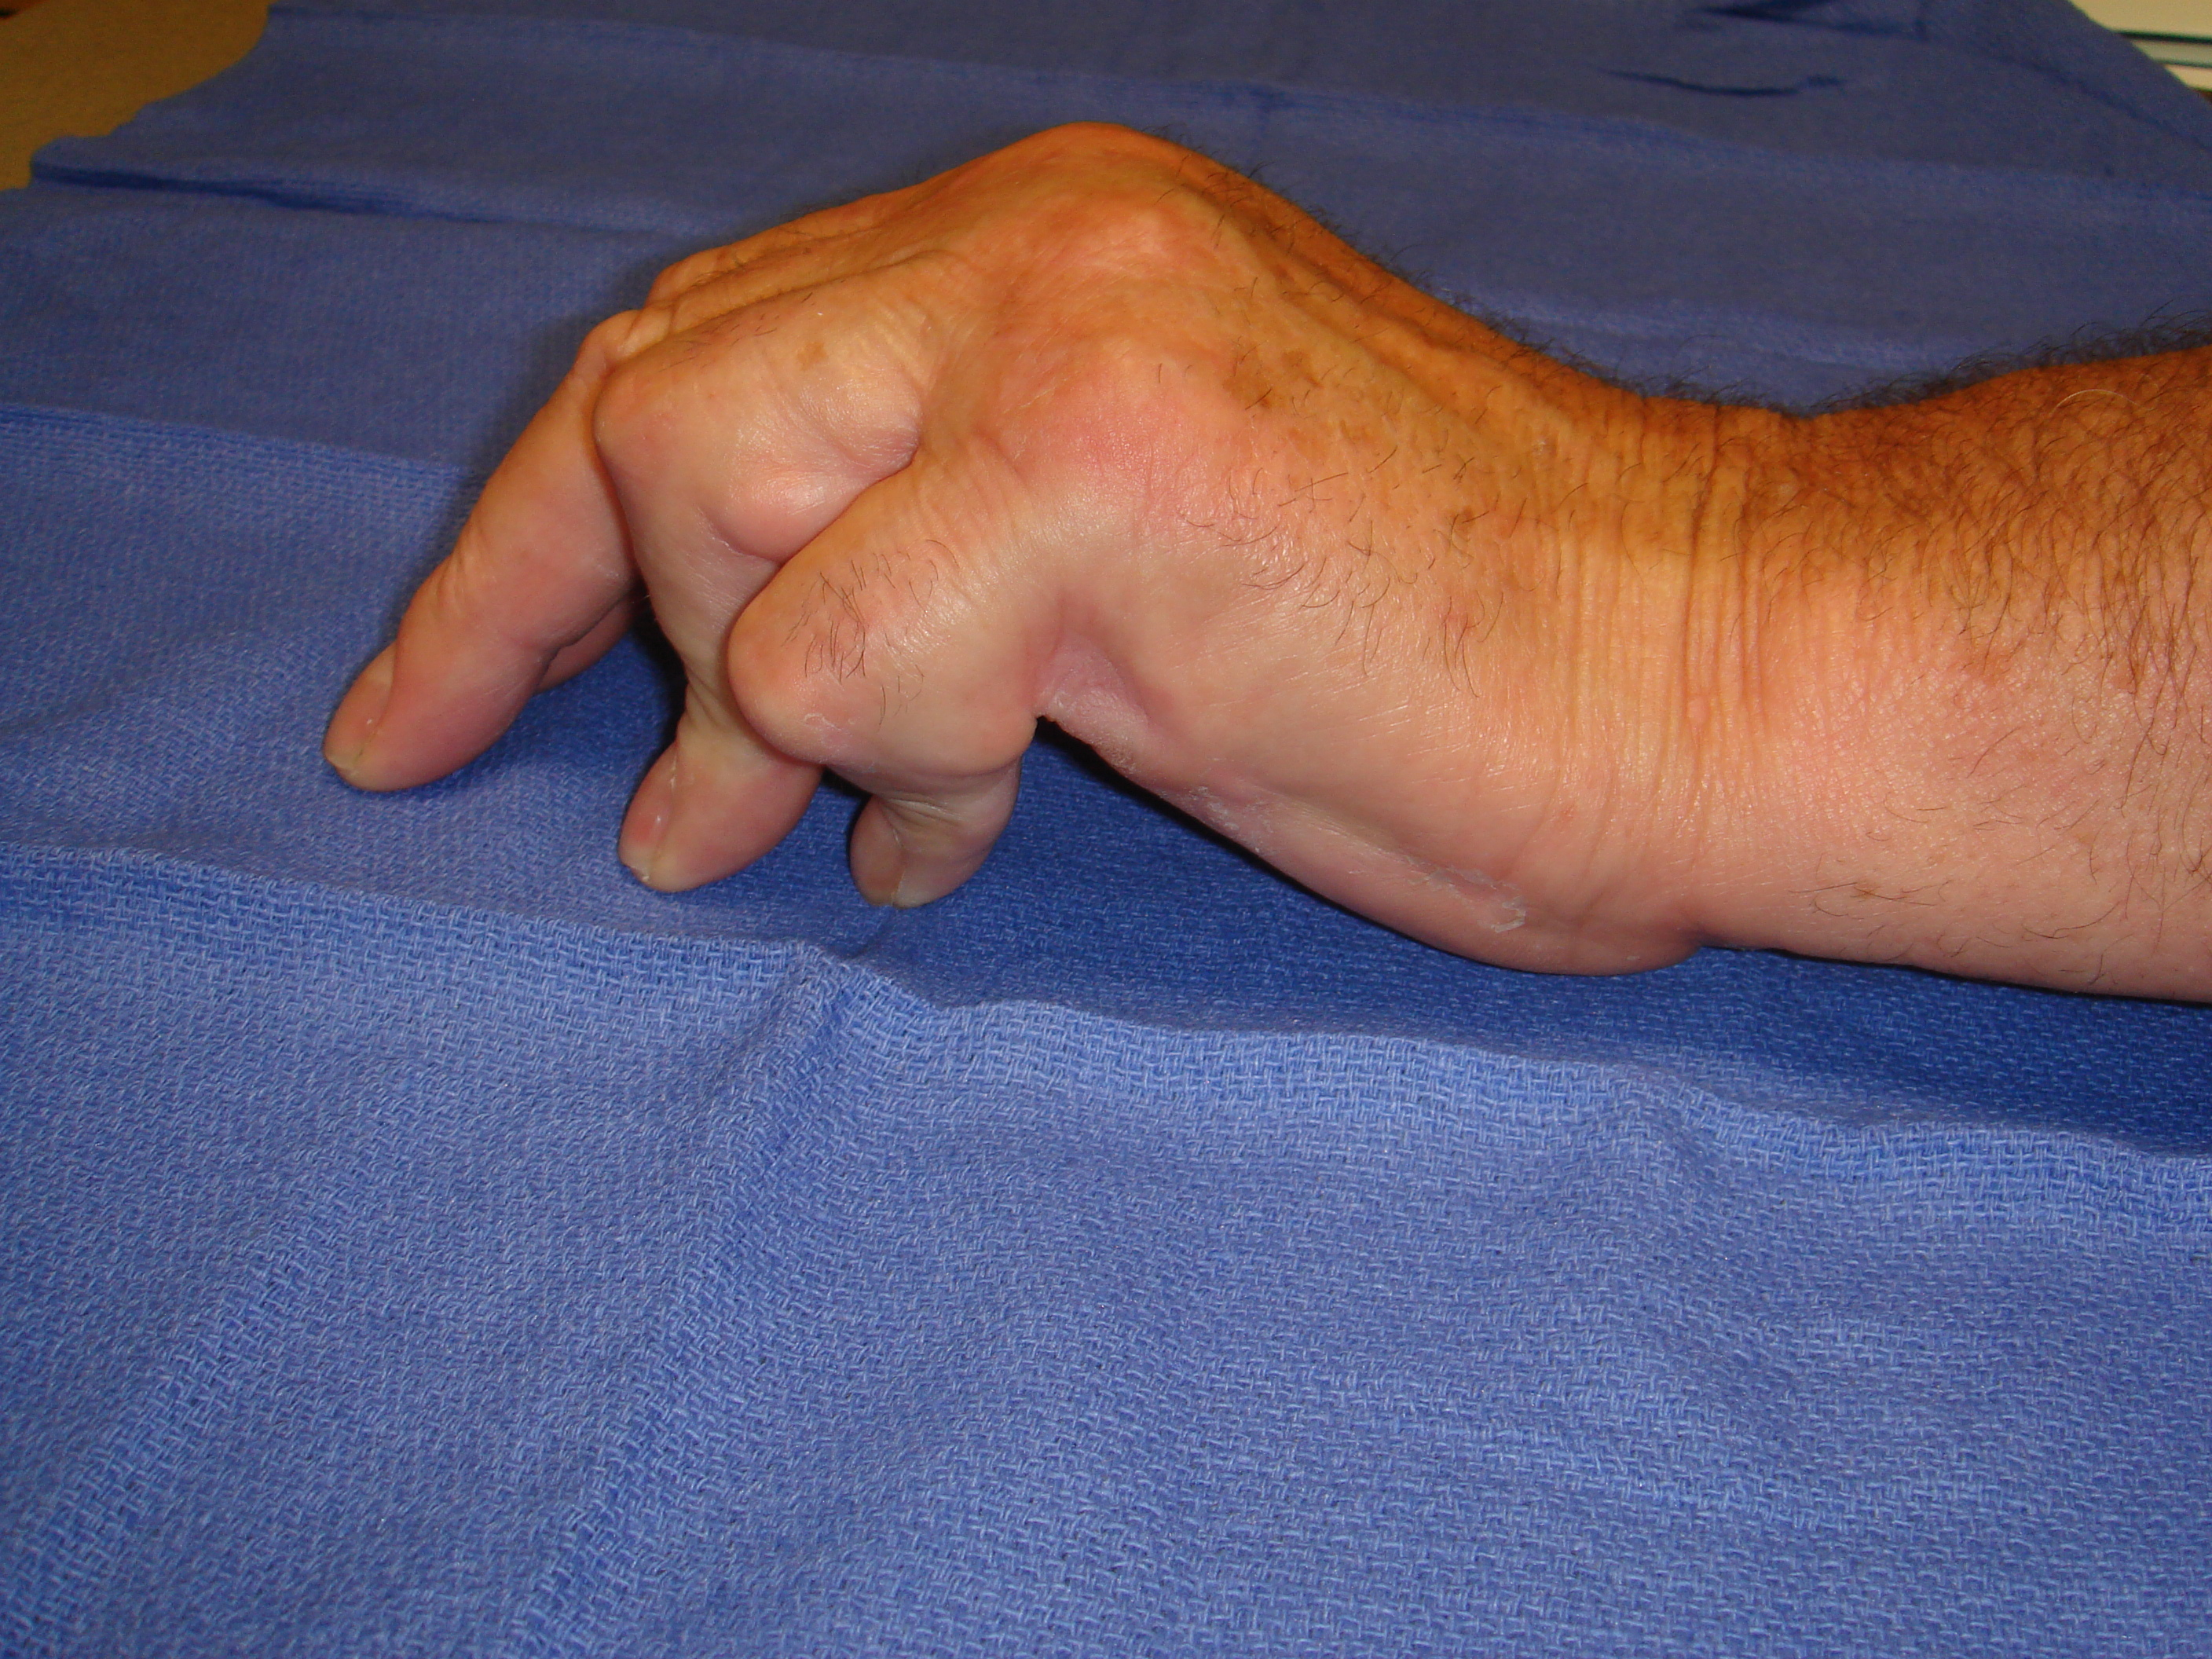 Figure 6a: This patient has advanced post-surgical recurrence of Dupuytren's contracture affecting his left ring and little fingers. There is very limited active and passive ROM. The patient refused to have surgery again, despite dysfunction, but sought collagenase on the advice of a friend who was treated with CCH. Identifiable, palpable cords are present in addition to scar tissue; ultimately, more than 1 treatment cycle was going to be required; treatment started with the little finger.